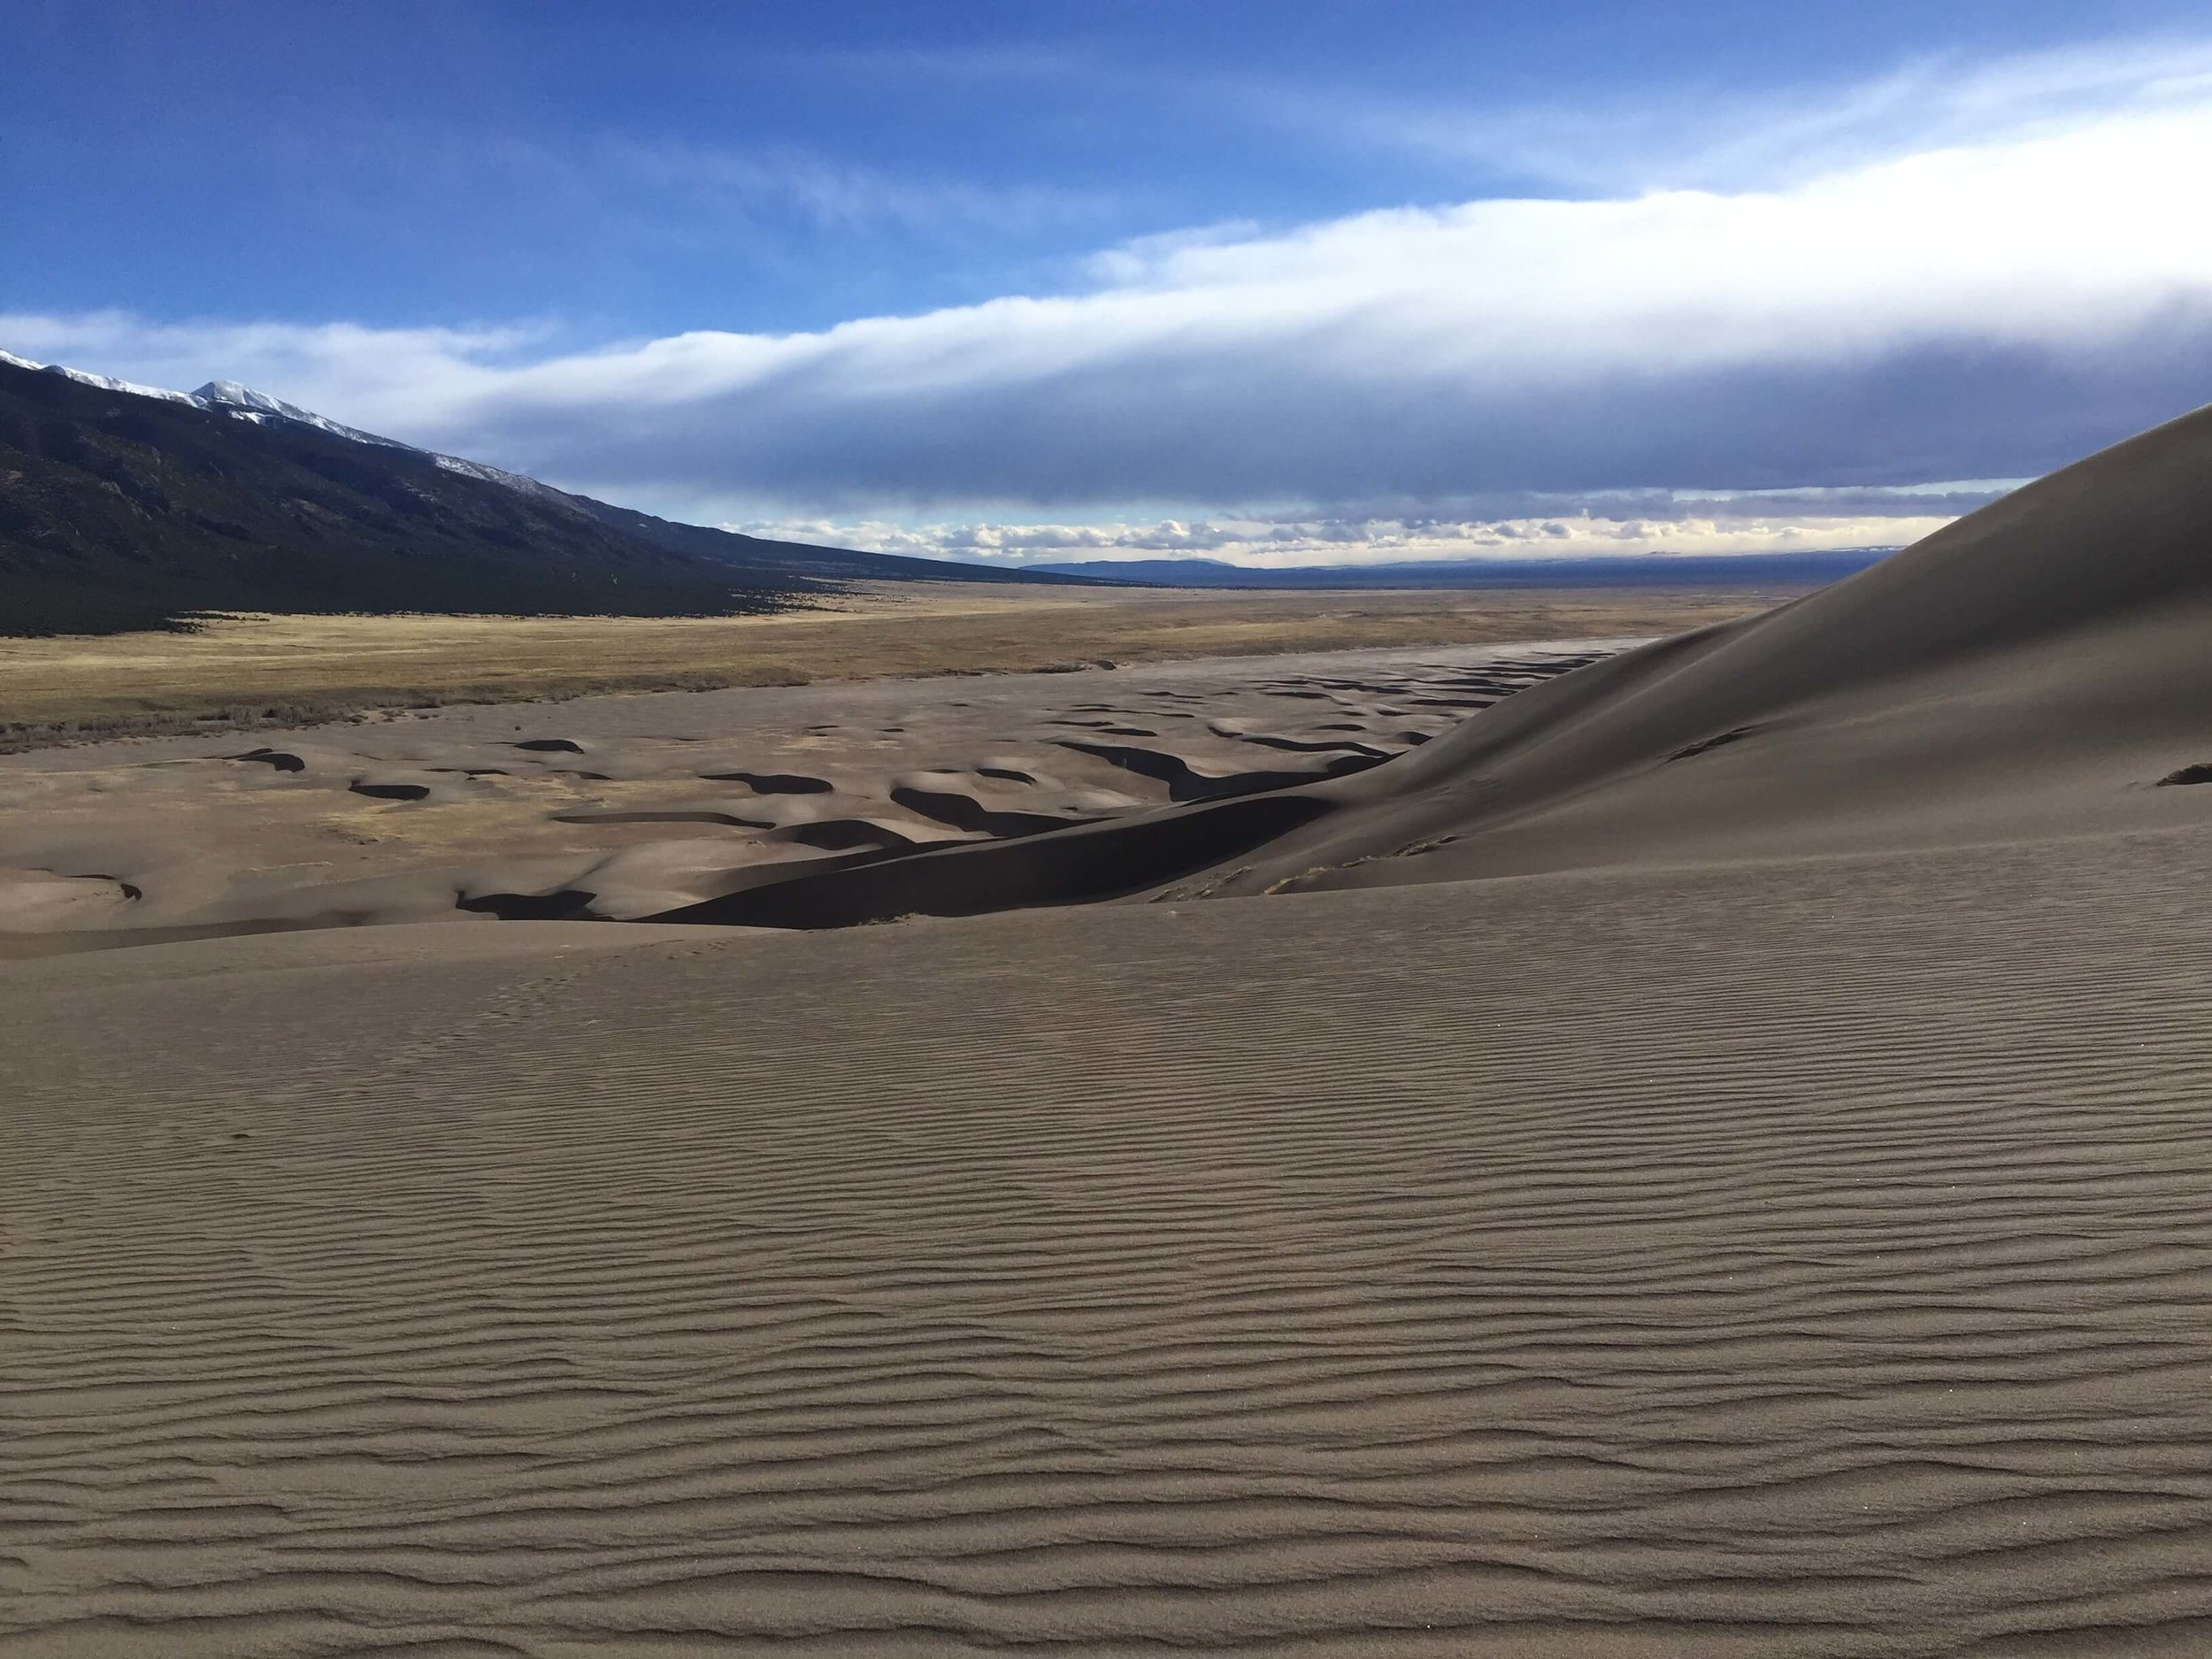 Perfect patterns in the sand created by the constructive/destructive winds of the Great Sand Dunes National Park and Preserve.